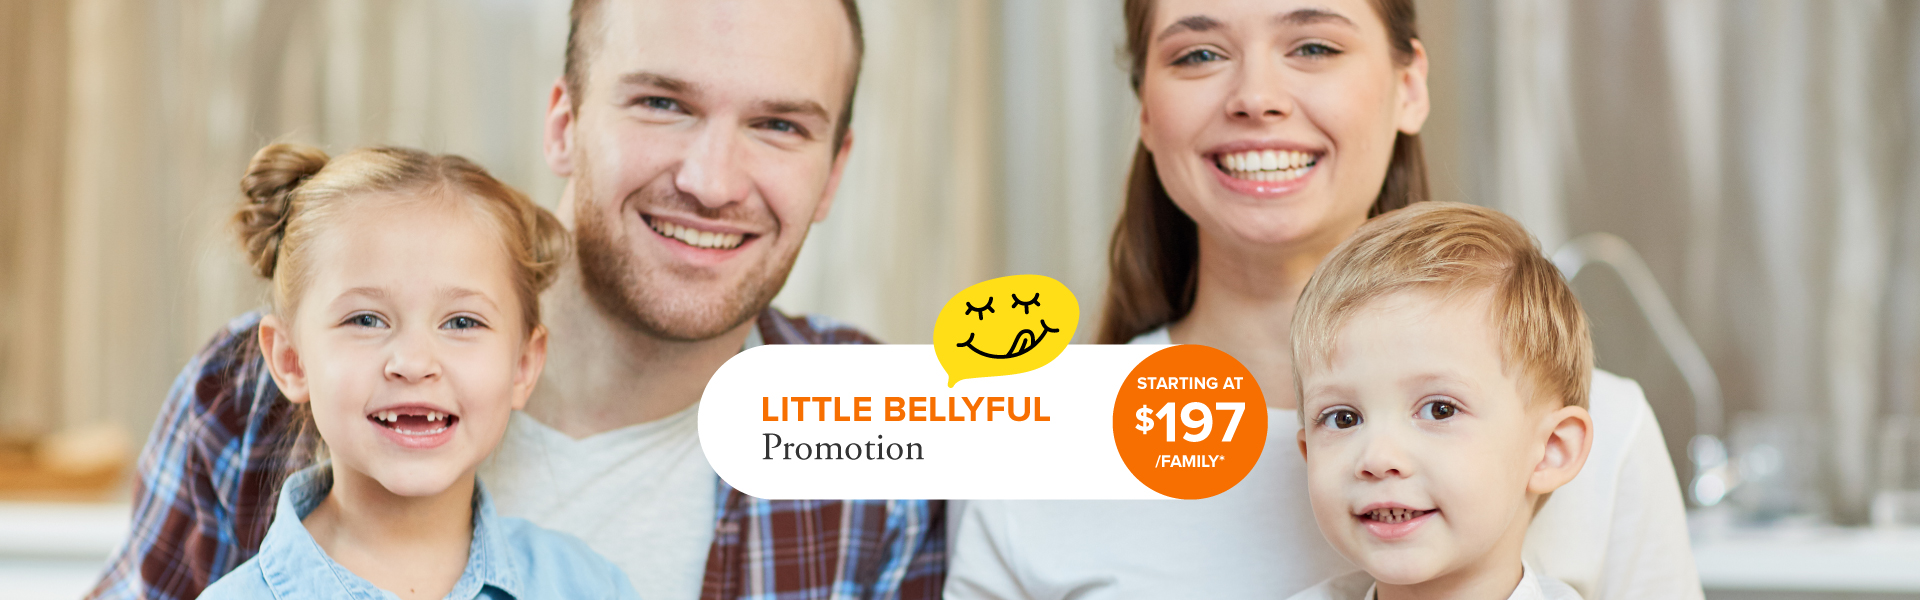 Family Promotion